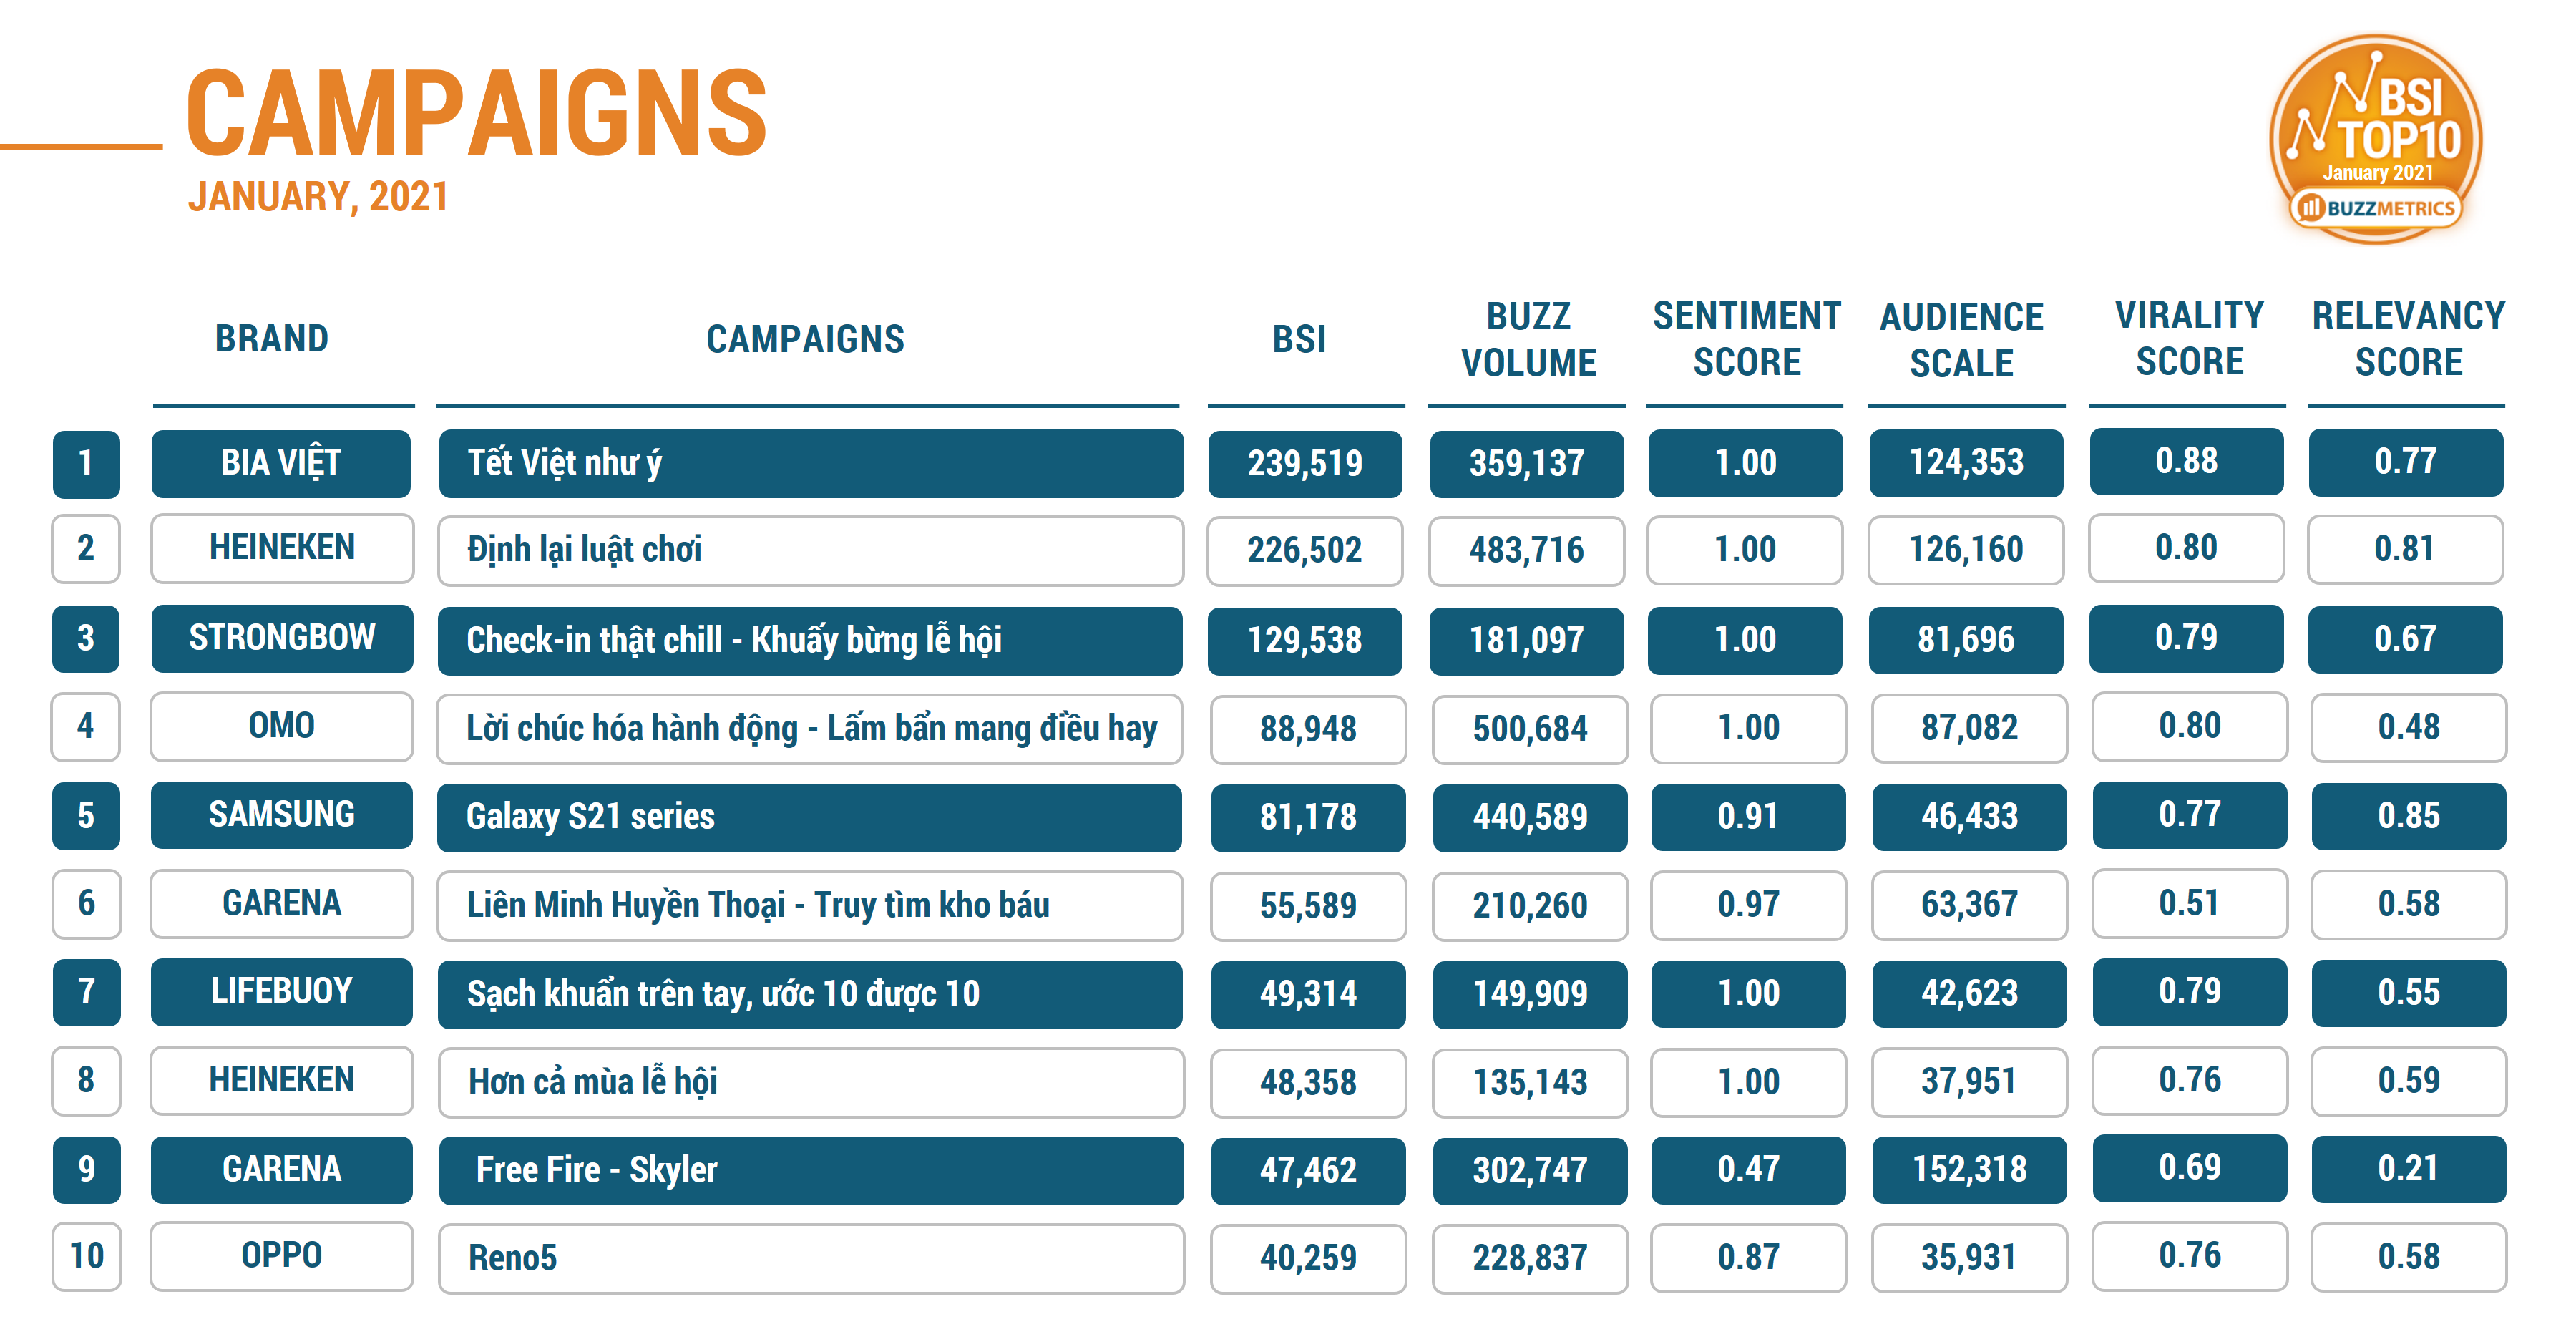 BSI TOP10 JAN 2021 CAMPAIGNS TABLE